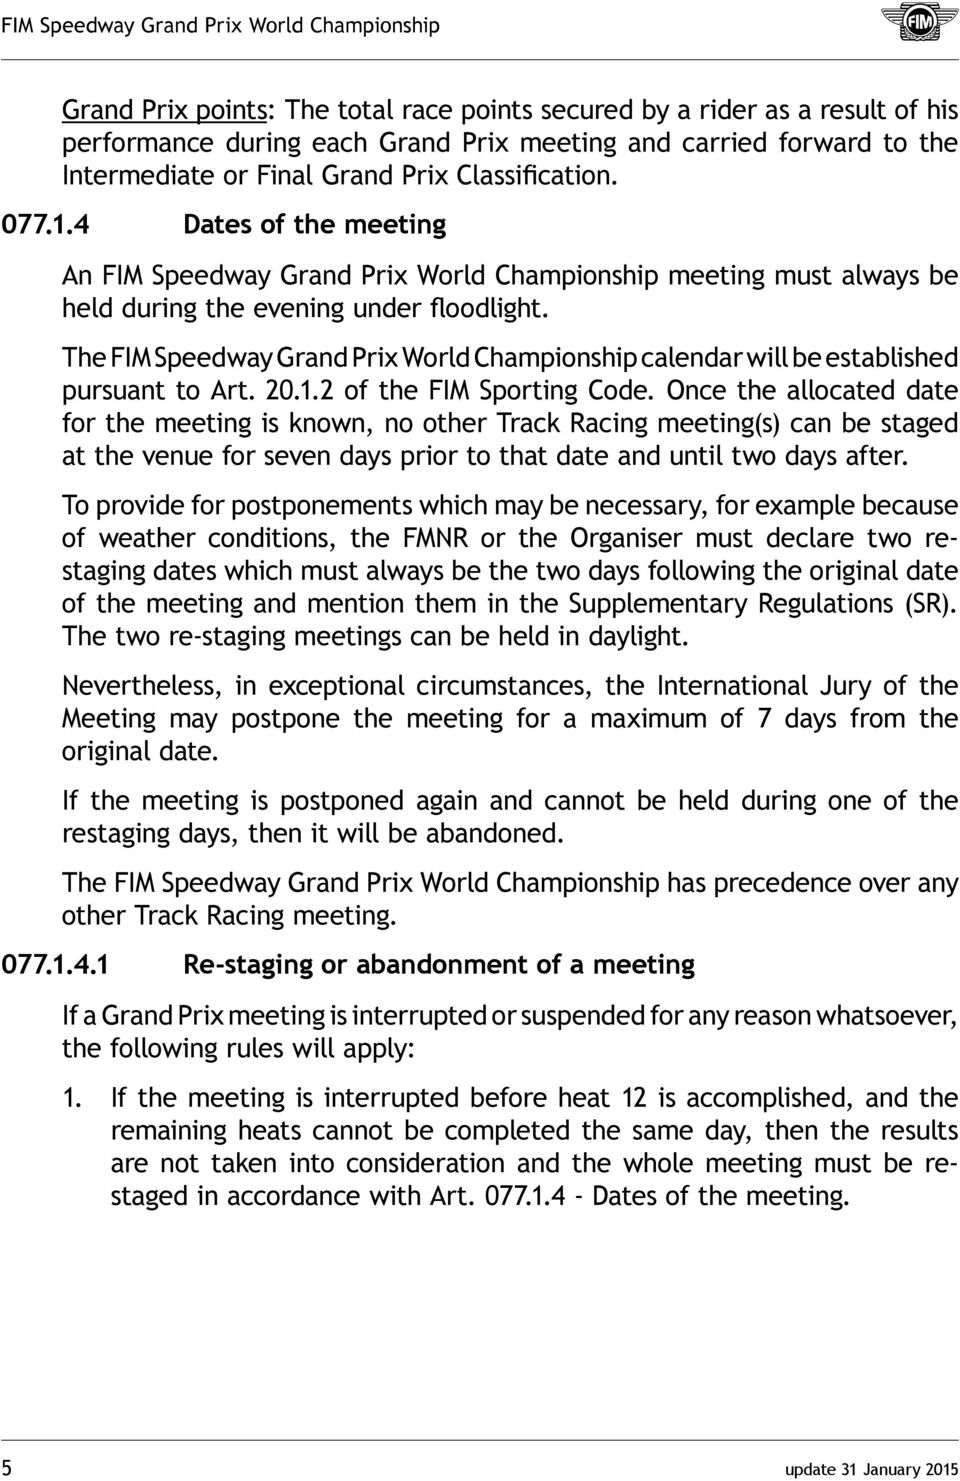 The FIM Speedway Grand Prix World Championship calendar will be established pursuant to Art. 20.1.2 of the FIM Sporting Code.